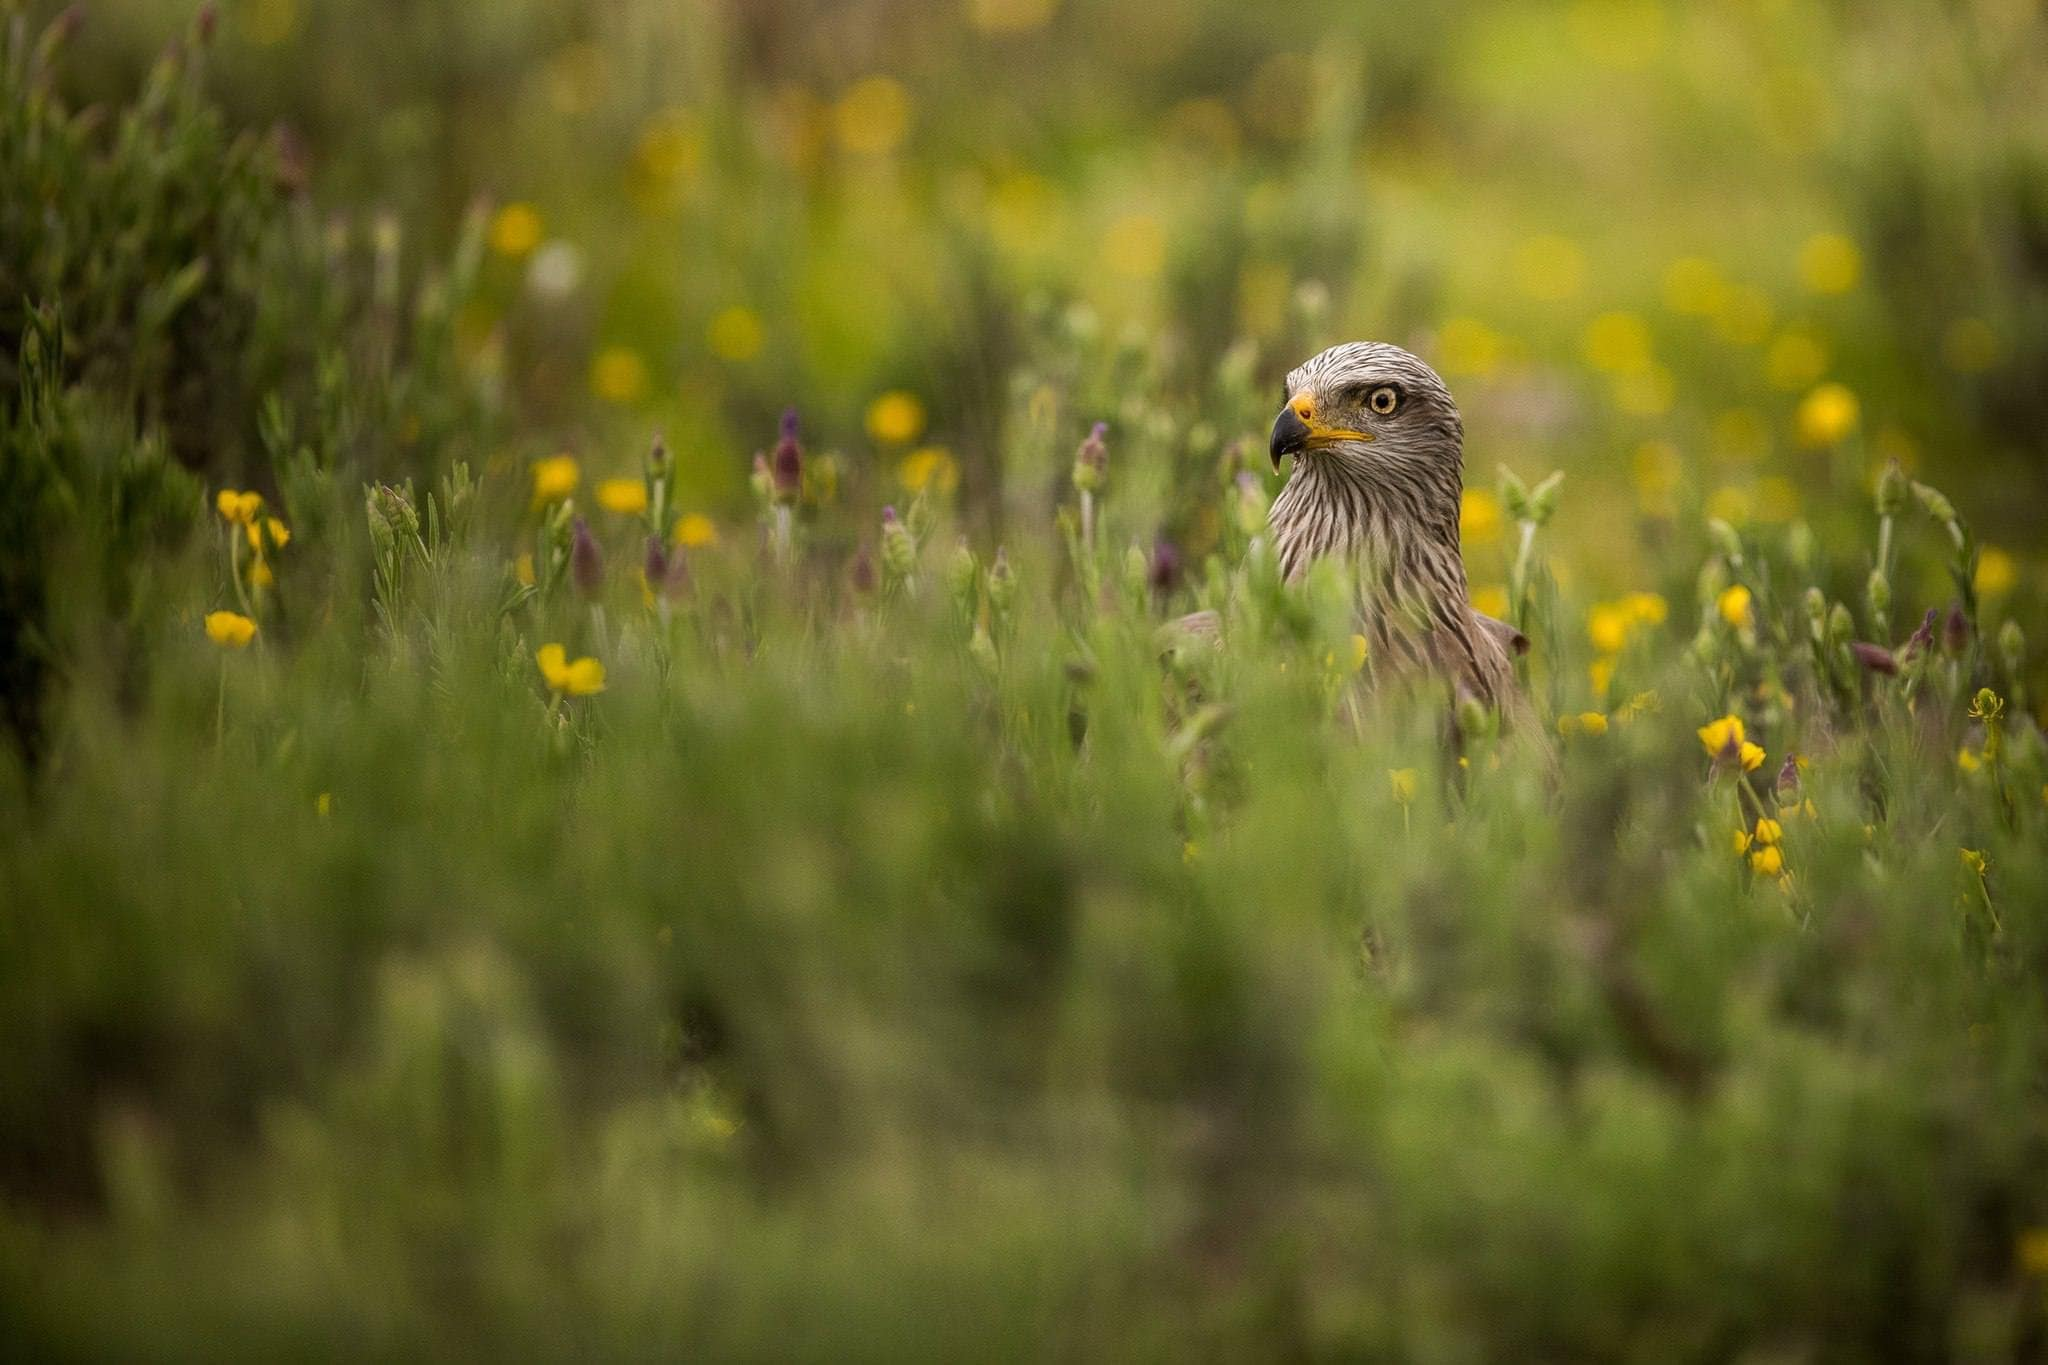 A Black Kite Amongst The Wildflowers Found At The Carrion Hide Photographed During The Spanish Birds Of The Calera Plains Photography Holiday